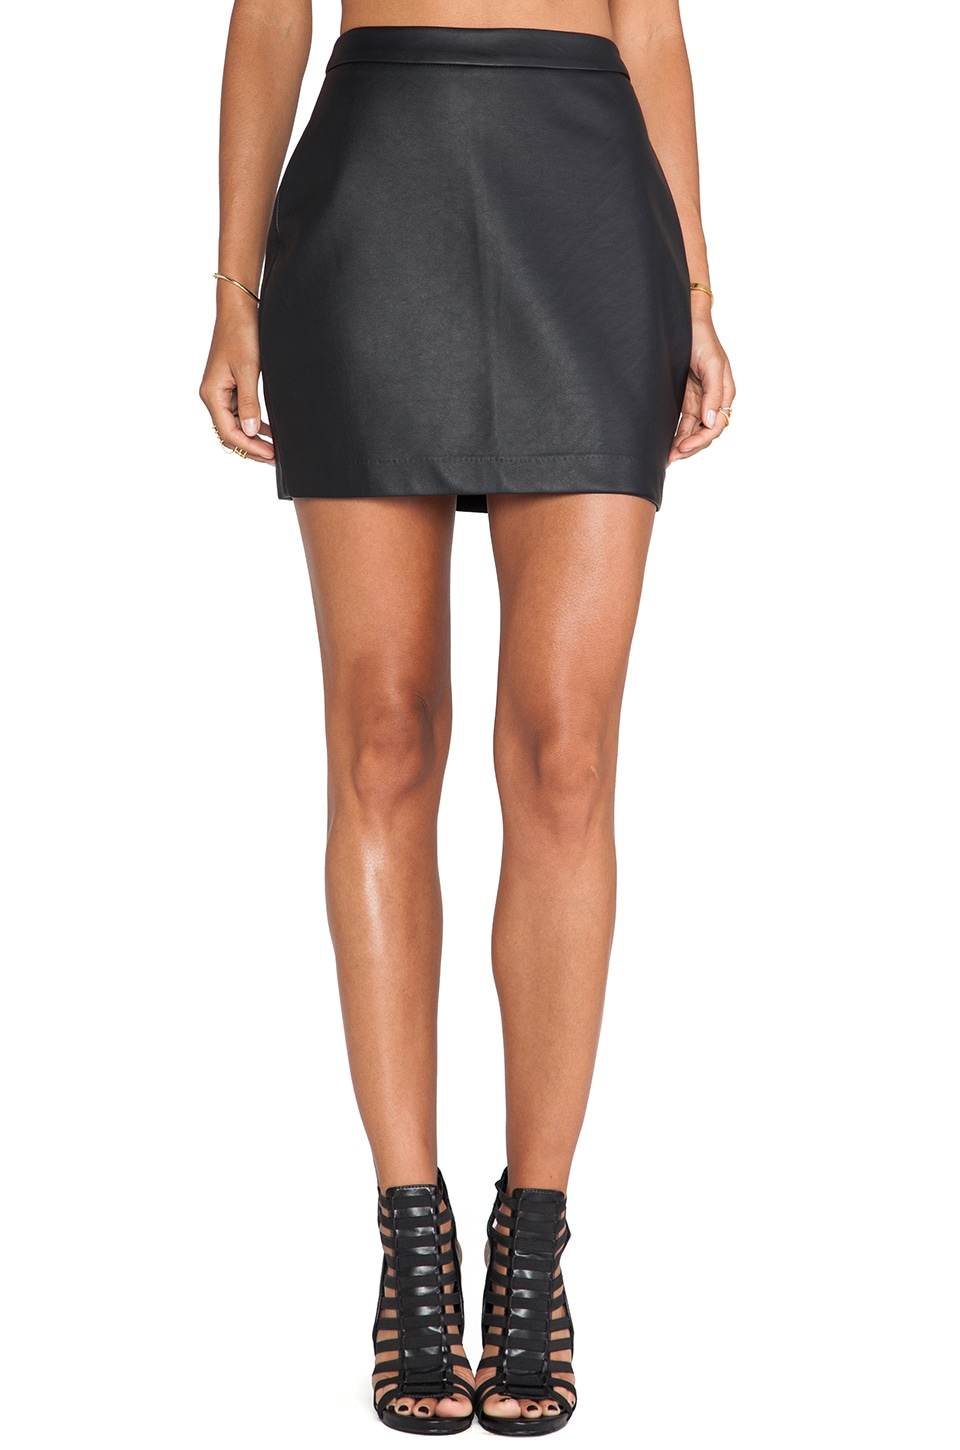 BB Dakota Fairley Faux Leather Skirt in Black